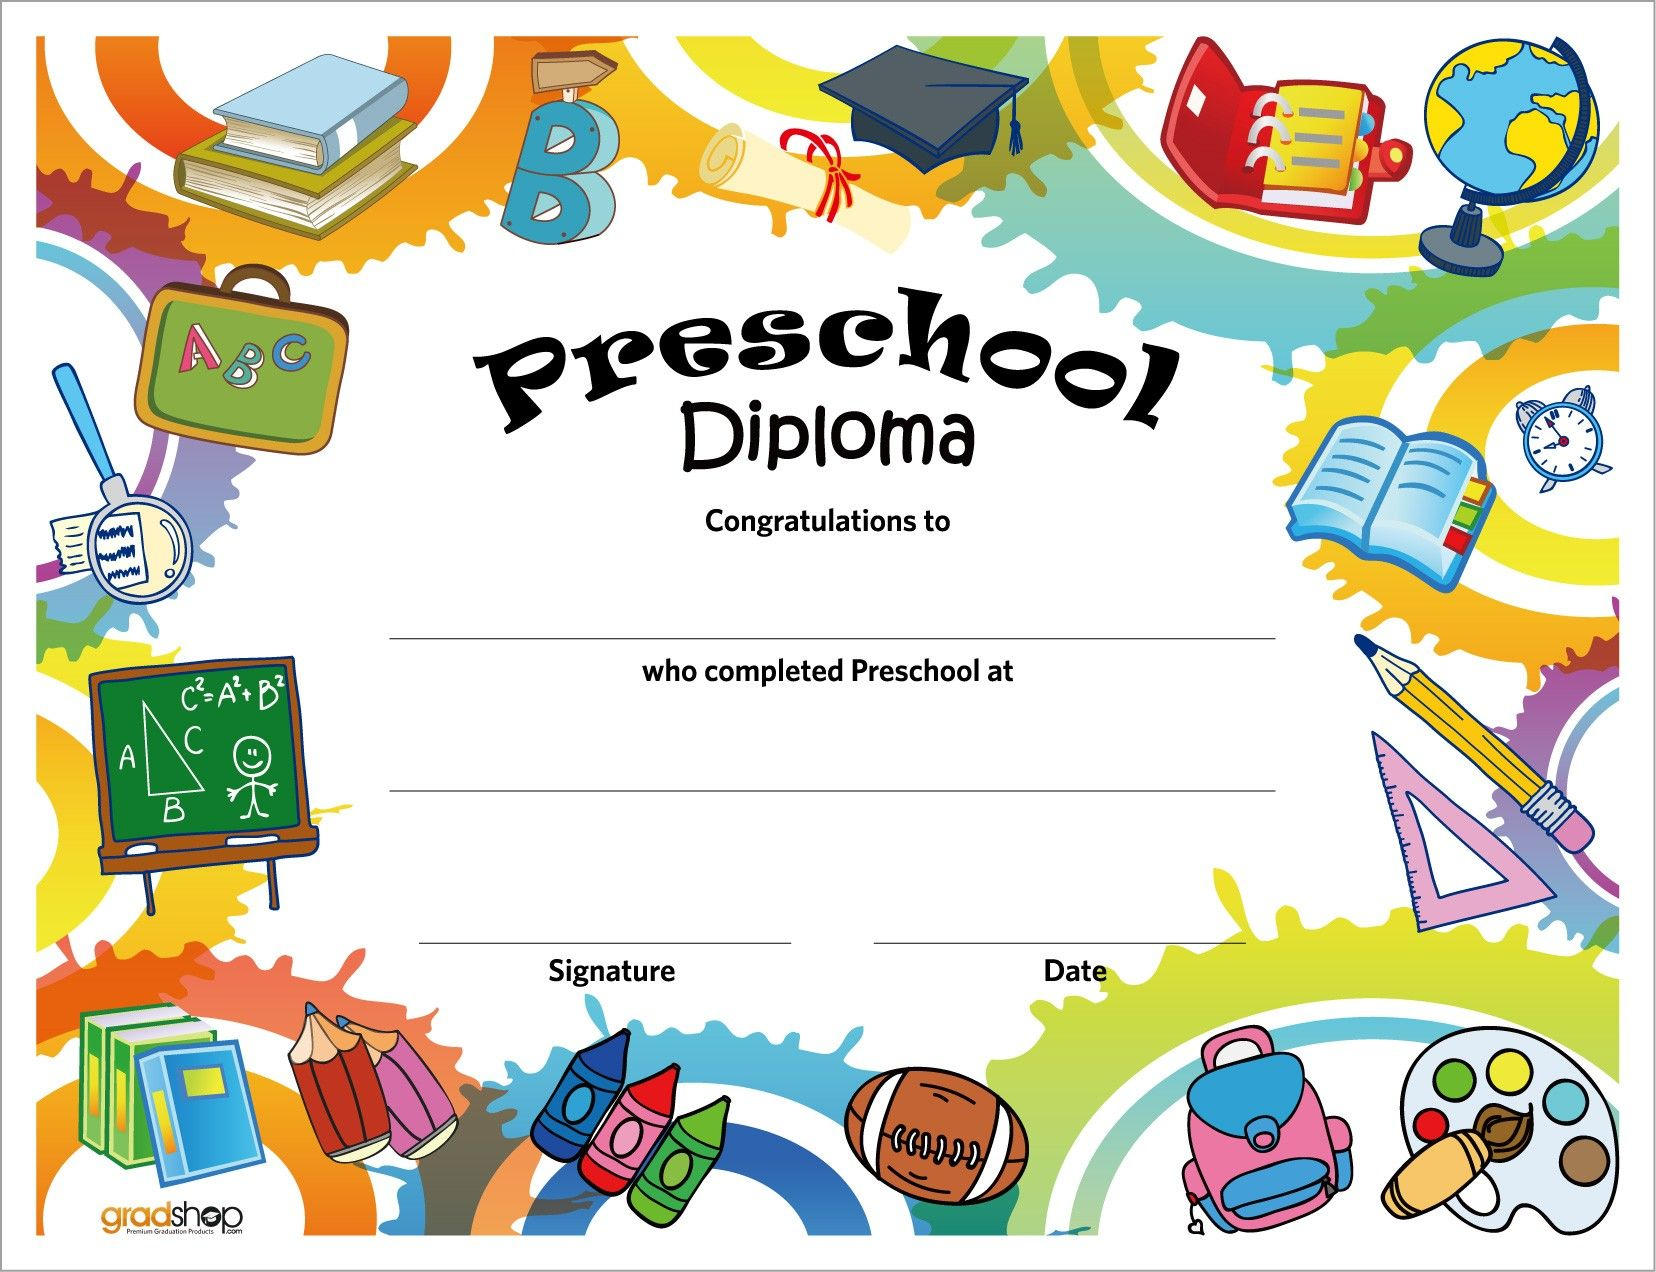 Pinterest Certificate For Preschool Templates Saferbrowser Yahoo Image Search Results Preschool Diploma Template Kindergarten Diploma Preschool Diploma Preschool diplomas templates printable free